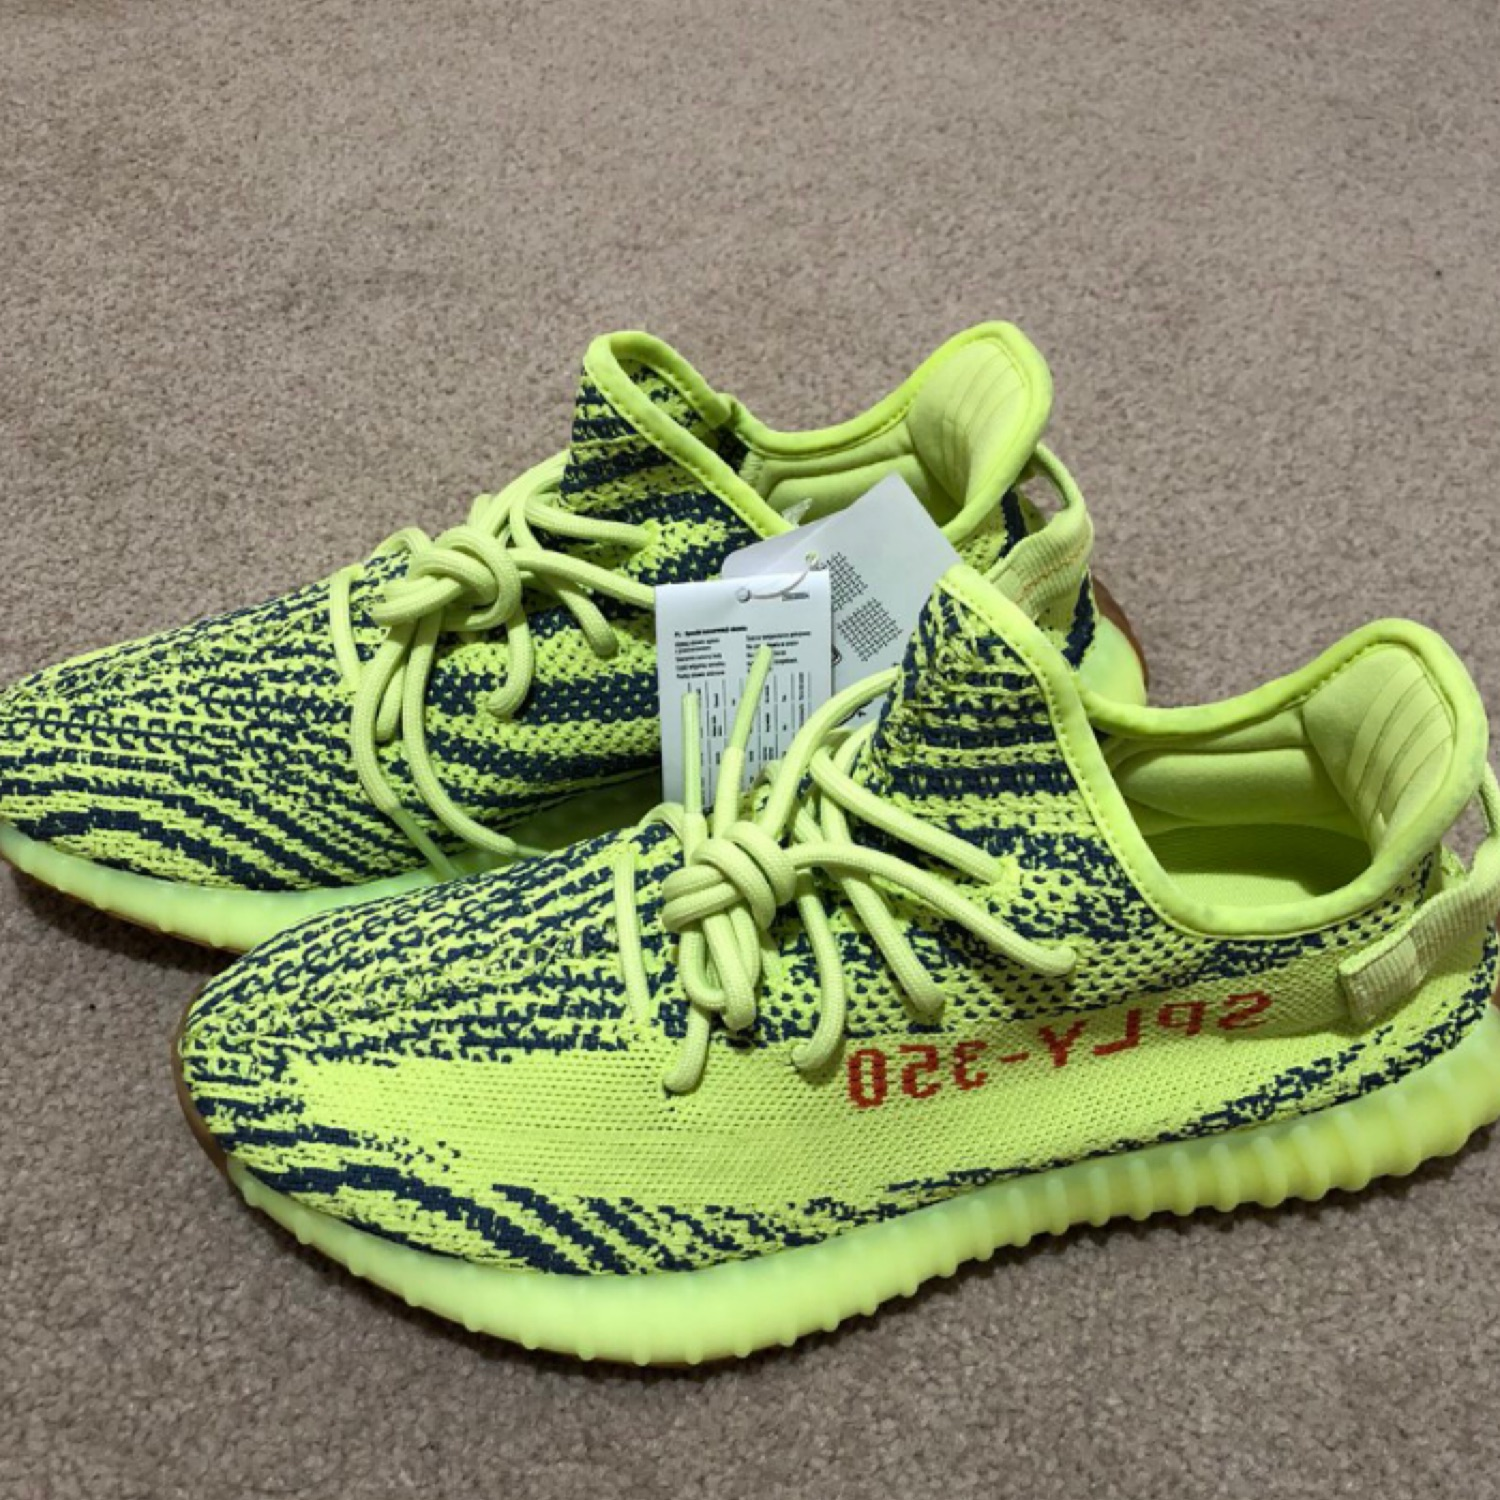 the best attitude 47920 bd840 Adidas Yeezy Boost 350 V2 Frozen Yellow Og